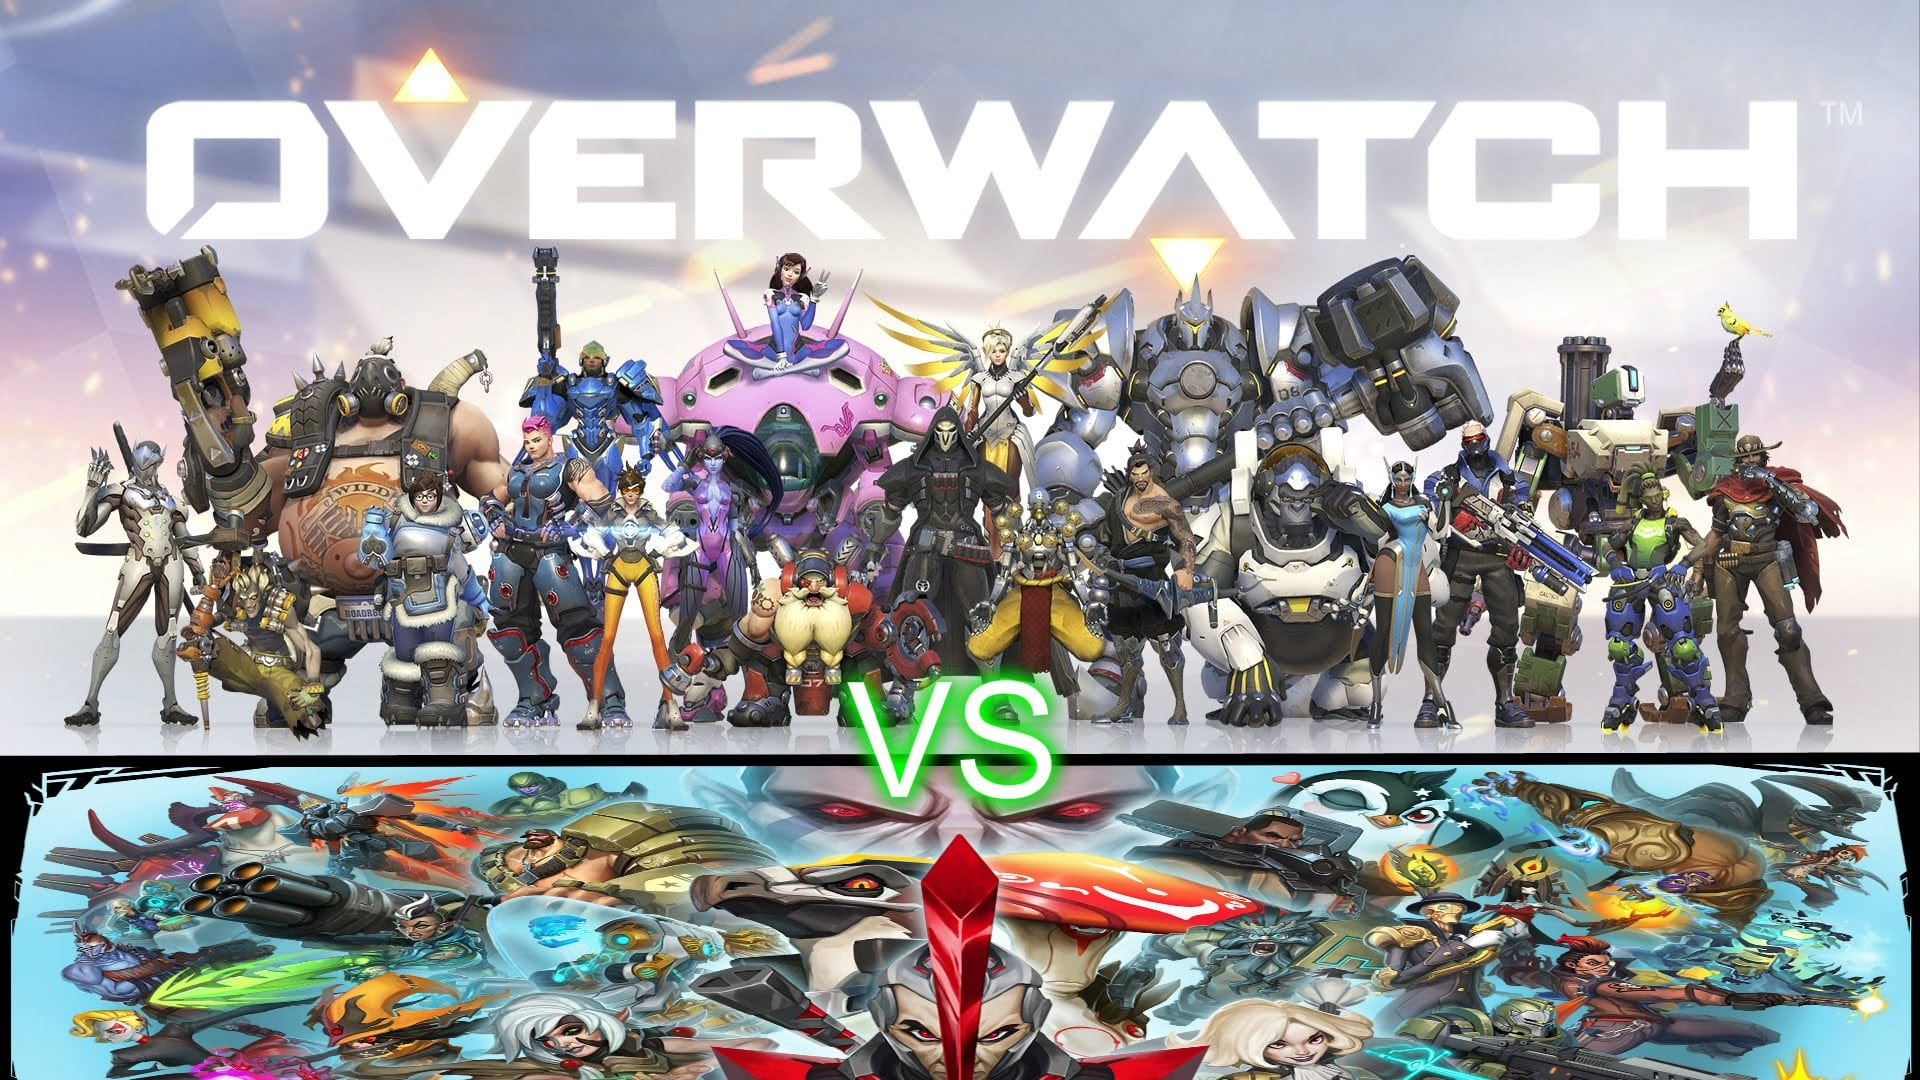 Overwatch how to choose which hero to show on background